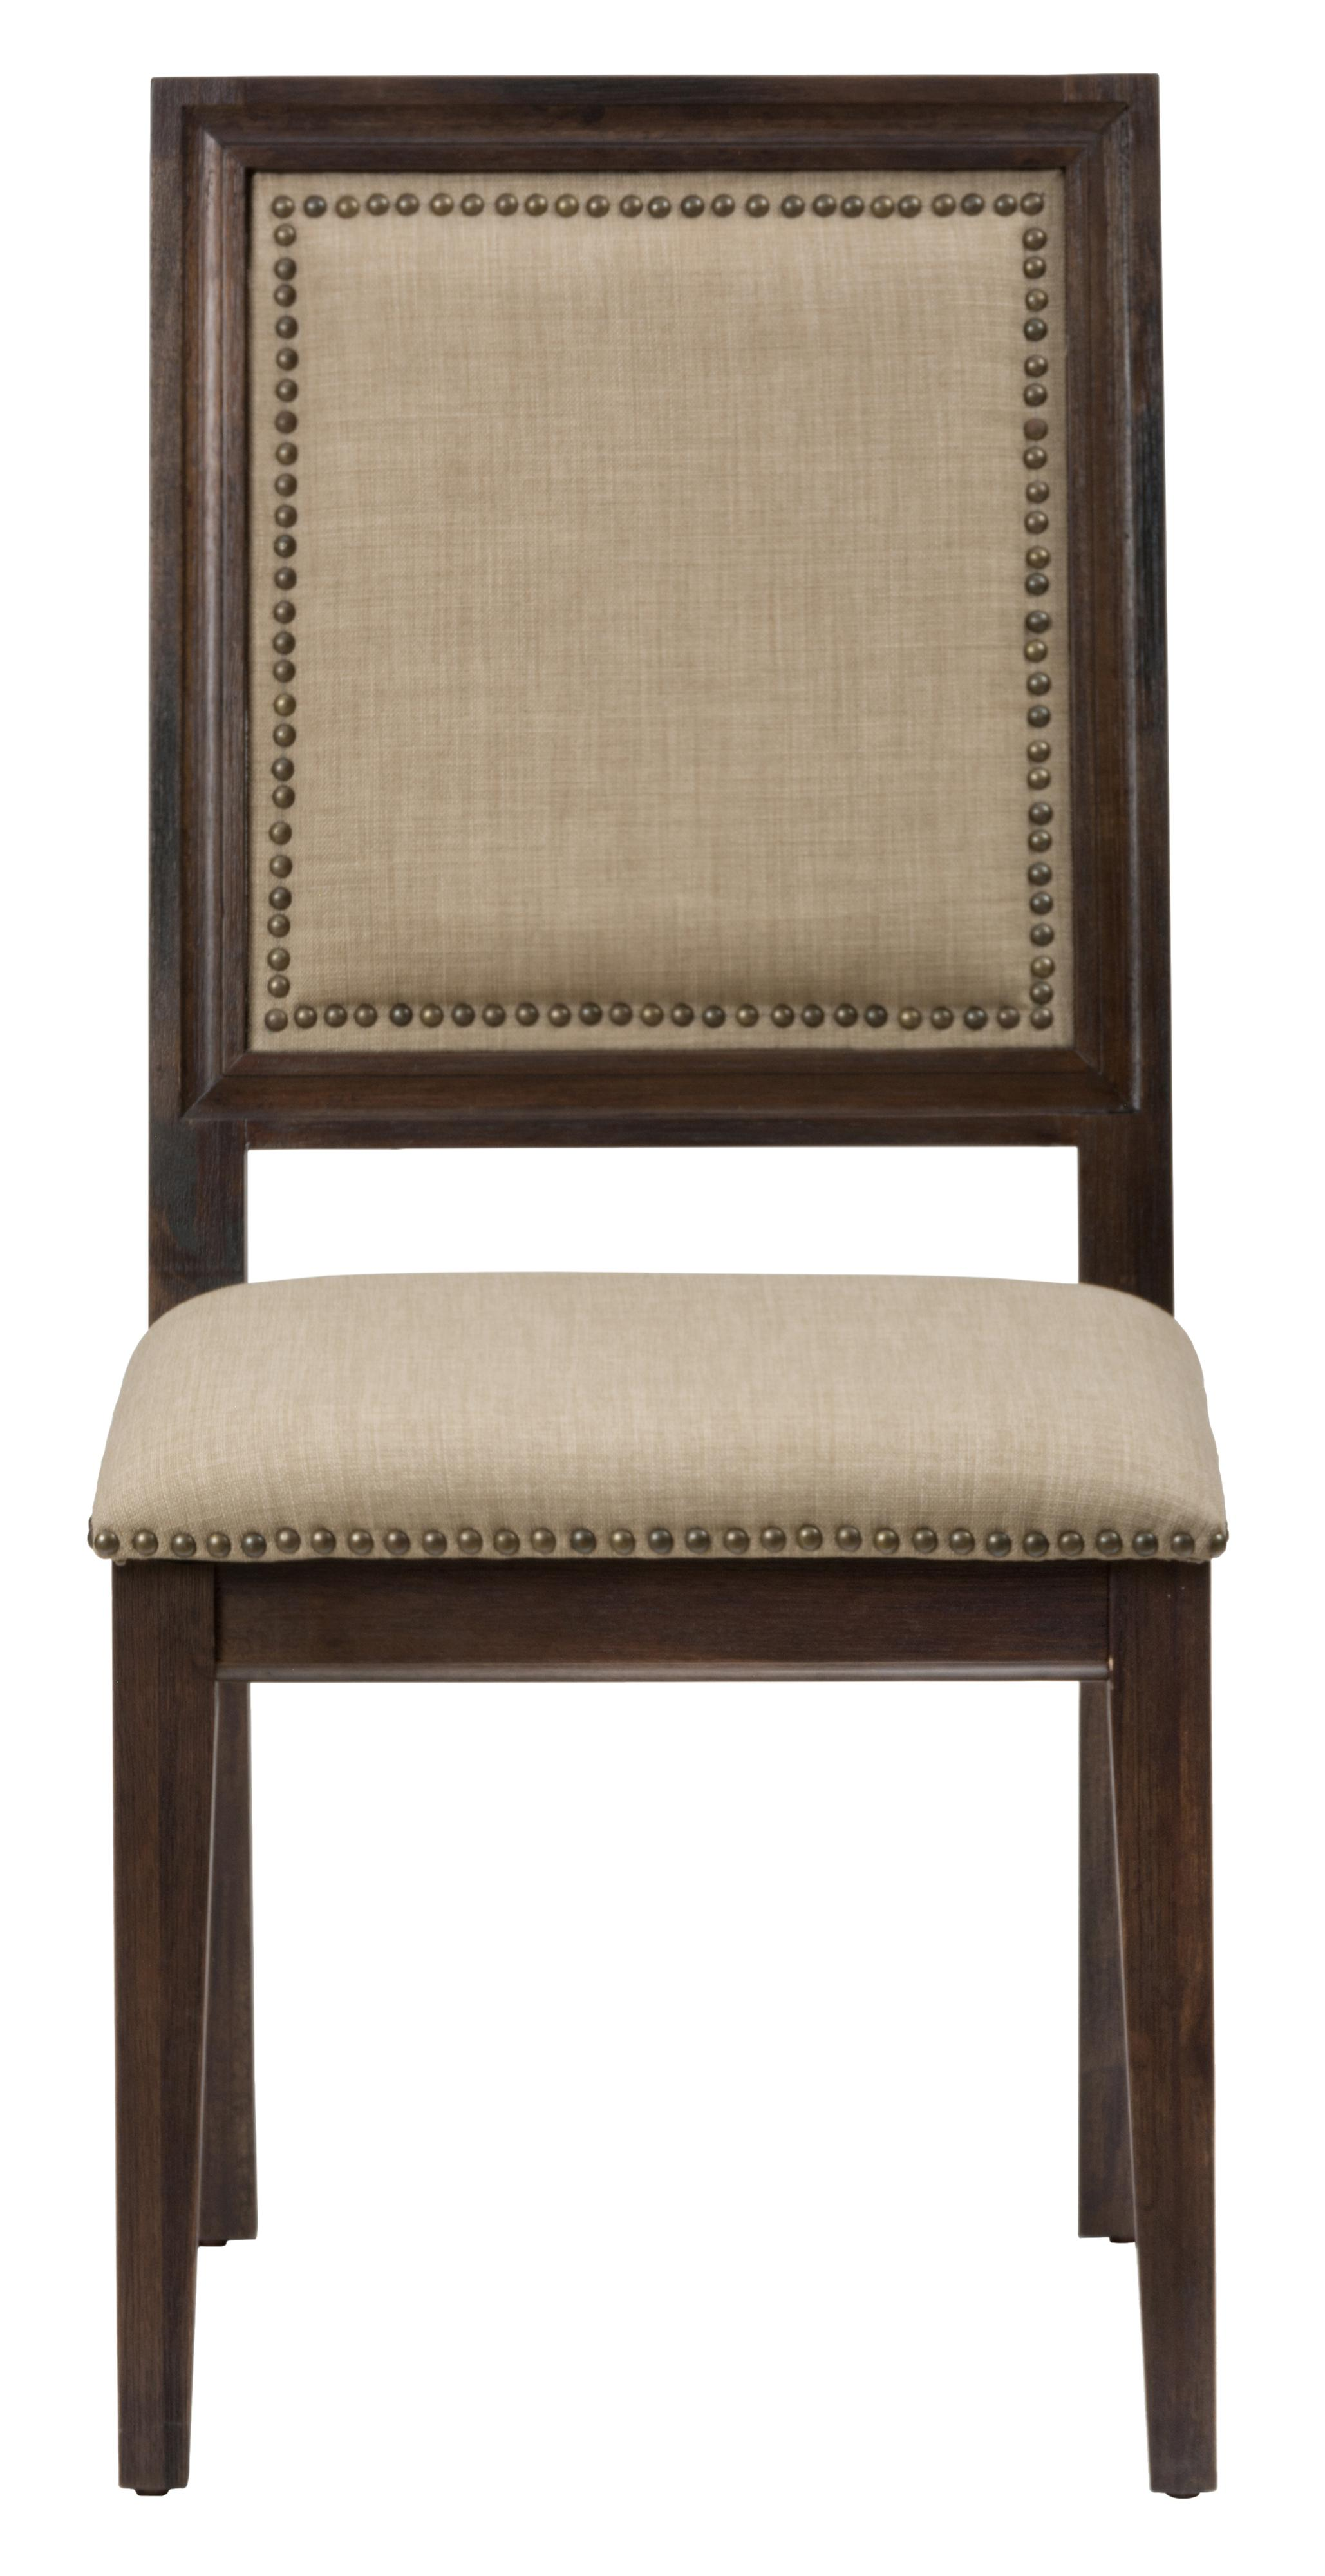 Jofran Evelyn Side Chair with Upholstered Back and Seat - Item Number: 678-423KD